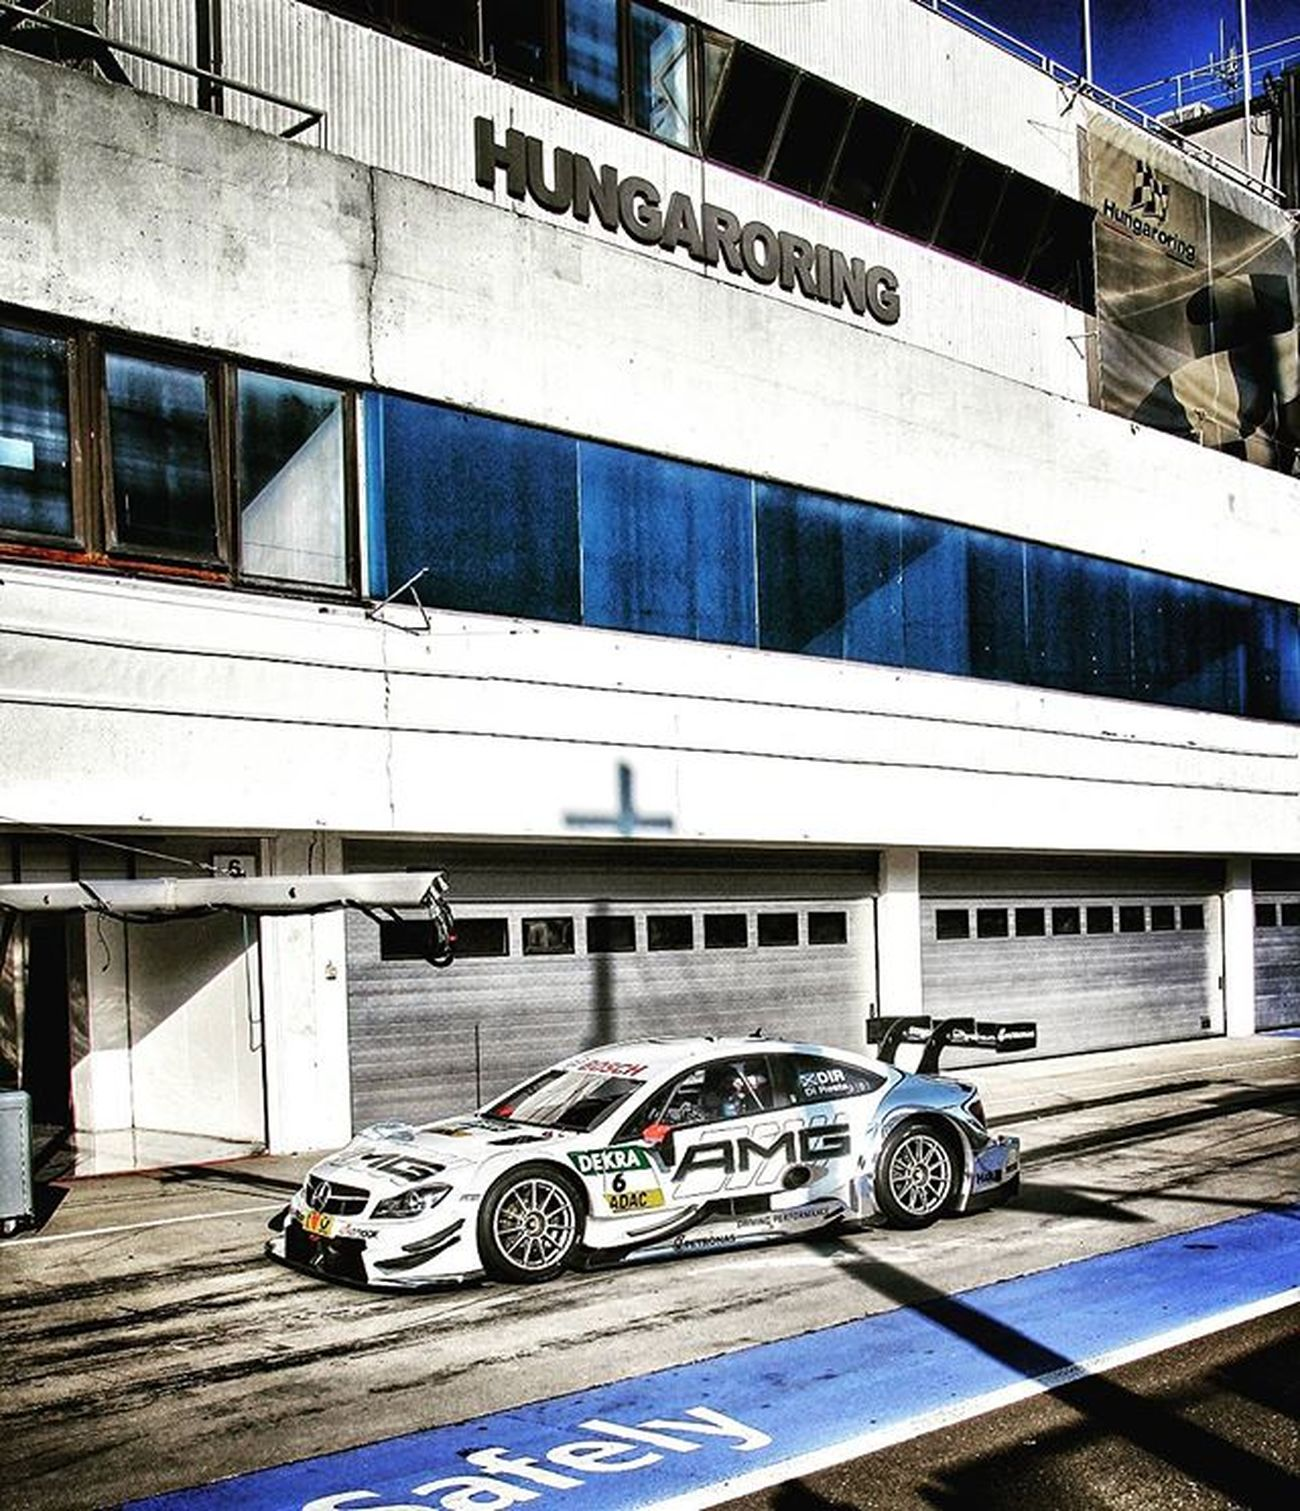 Paul Di Resta, former F-1 driver in the pitlane EEprojects DTM Mercedesamg Autosport Motorsport Speed Touringcar Mercedes Car Sportscar Racecar Driving Pushtothelimit Masculine Racetrack Pitstop Champion Racing Badassmachines Power Service Pitlane Racetrack Pauldiresta Architecture building design f1 @fia_wtcctagscarshungaryhungaroring@mercedesamgdtm